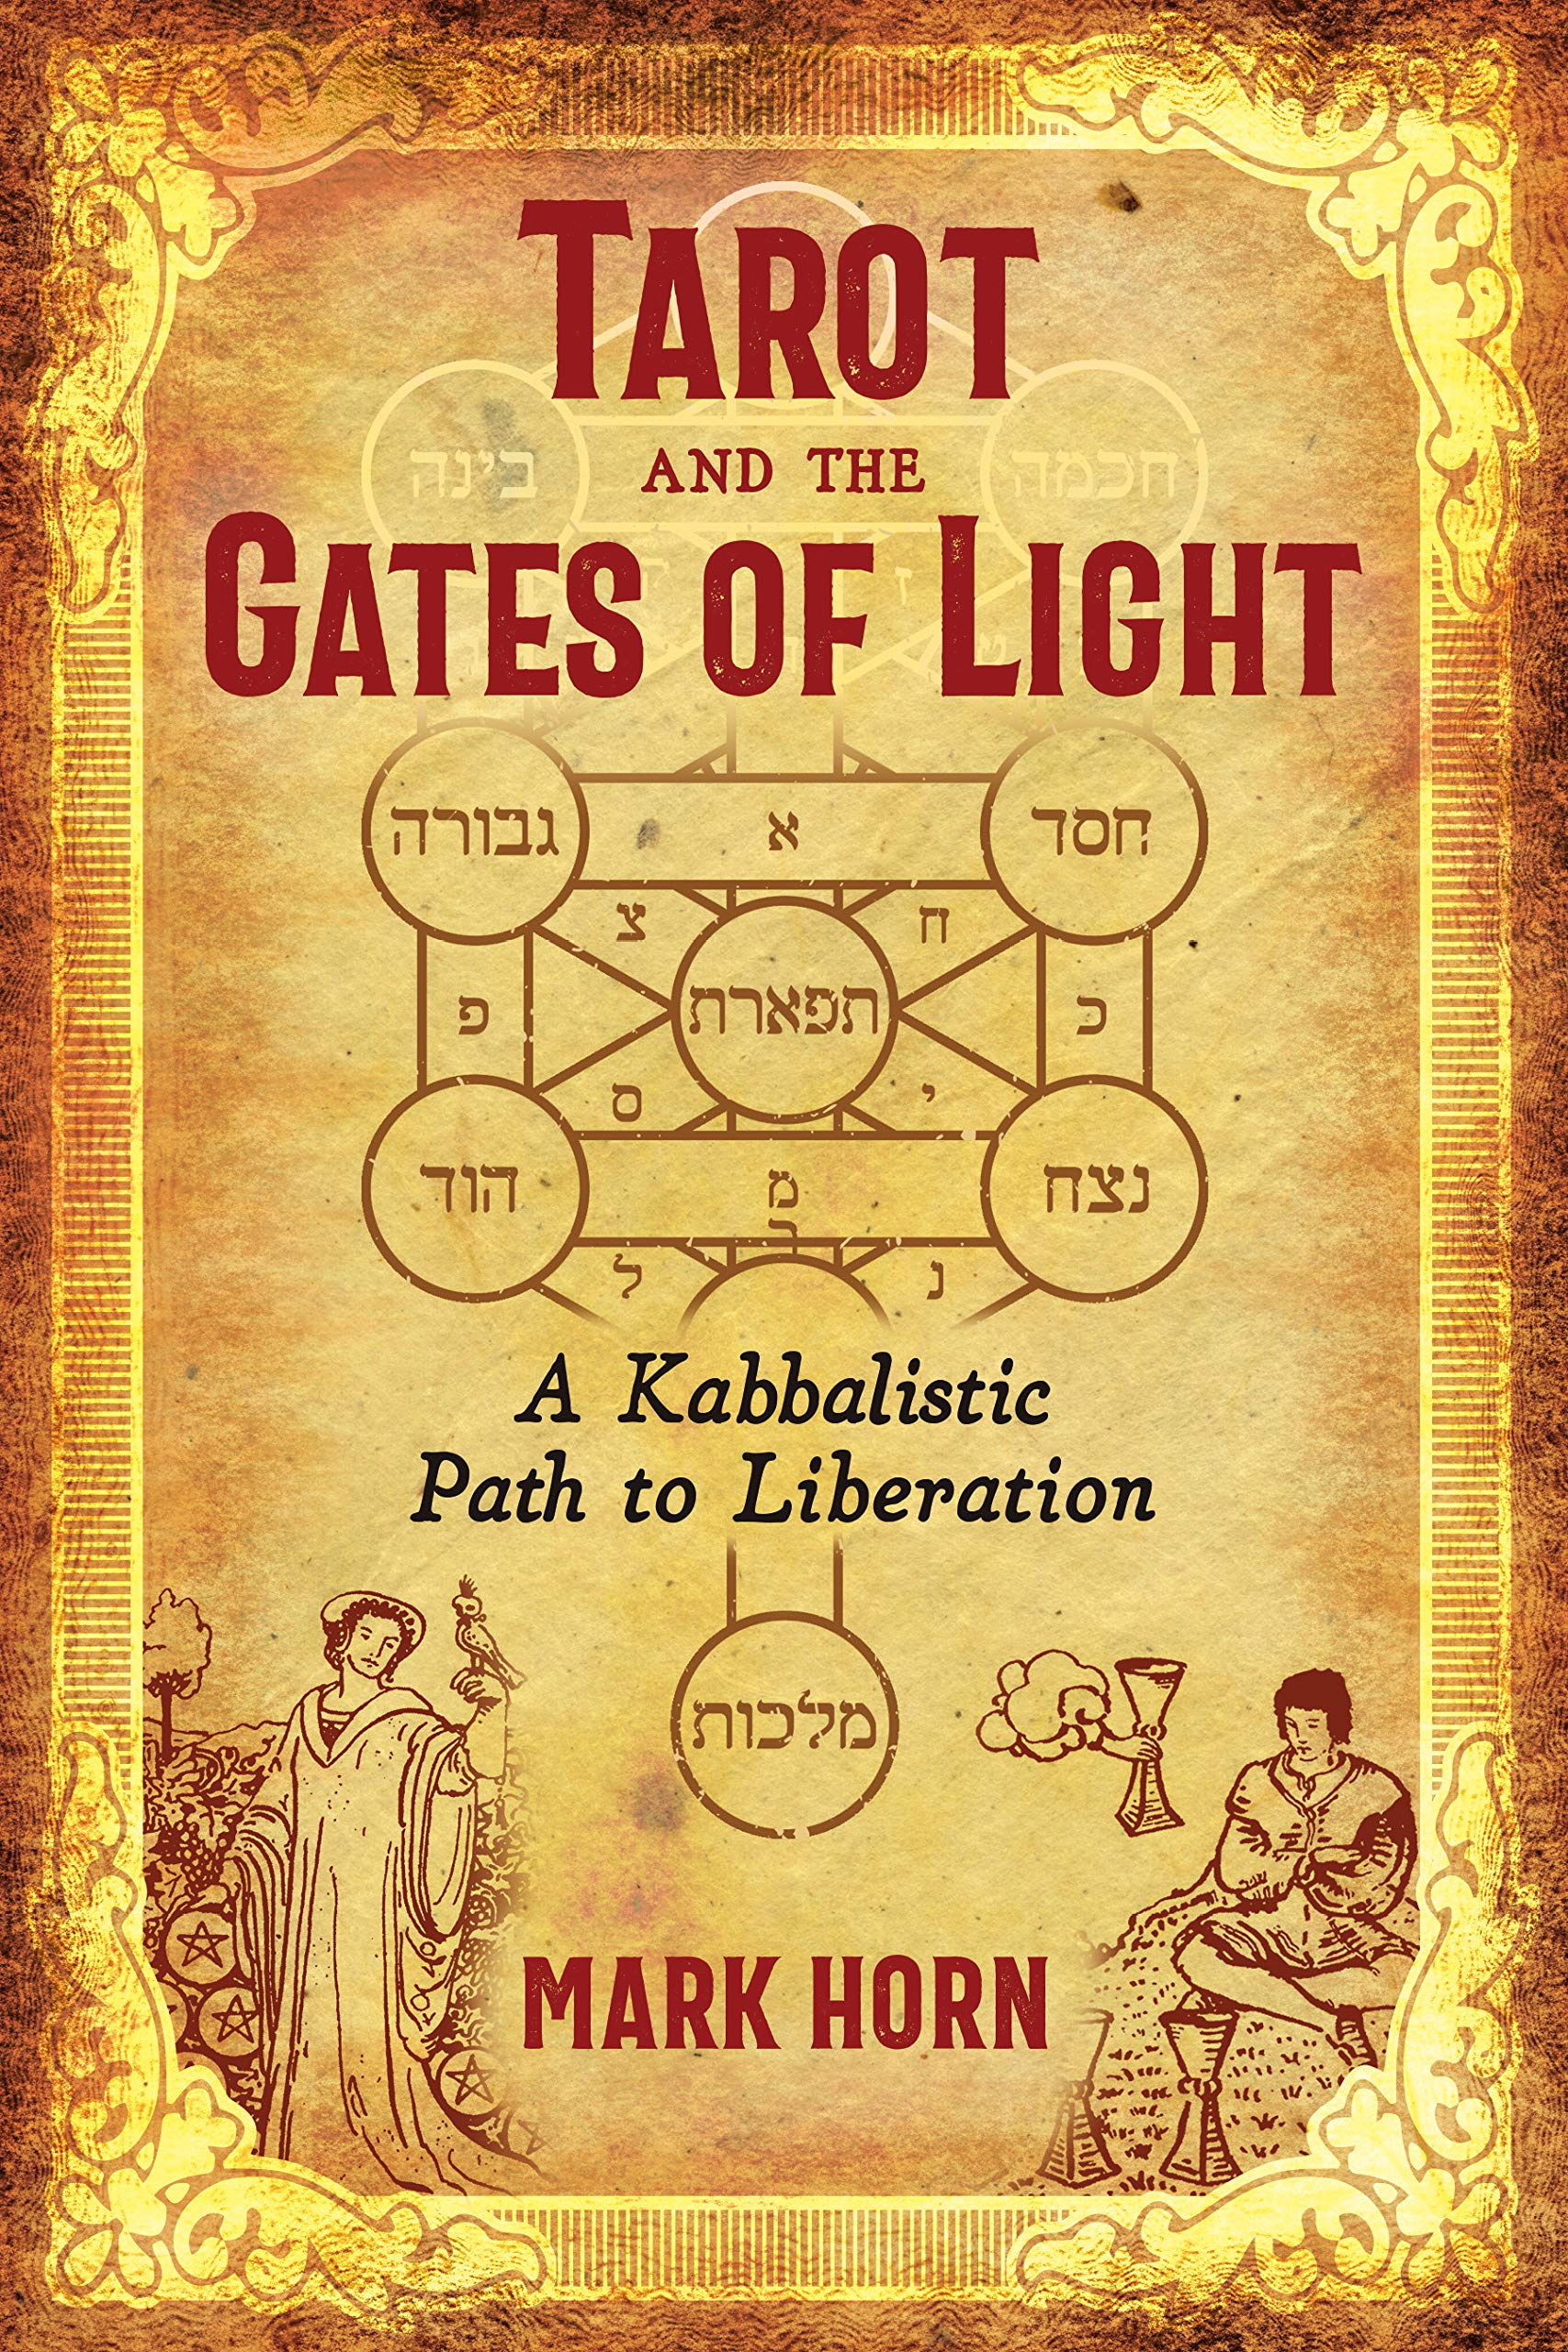 Tarot and the Gates of Light: A Kabbalistic Path to